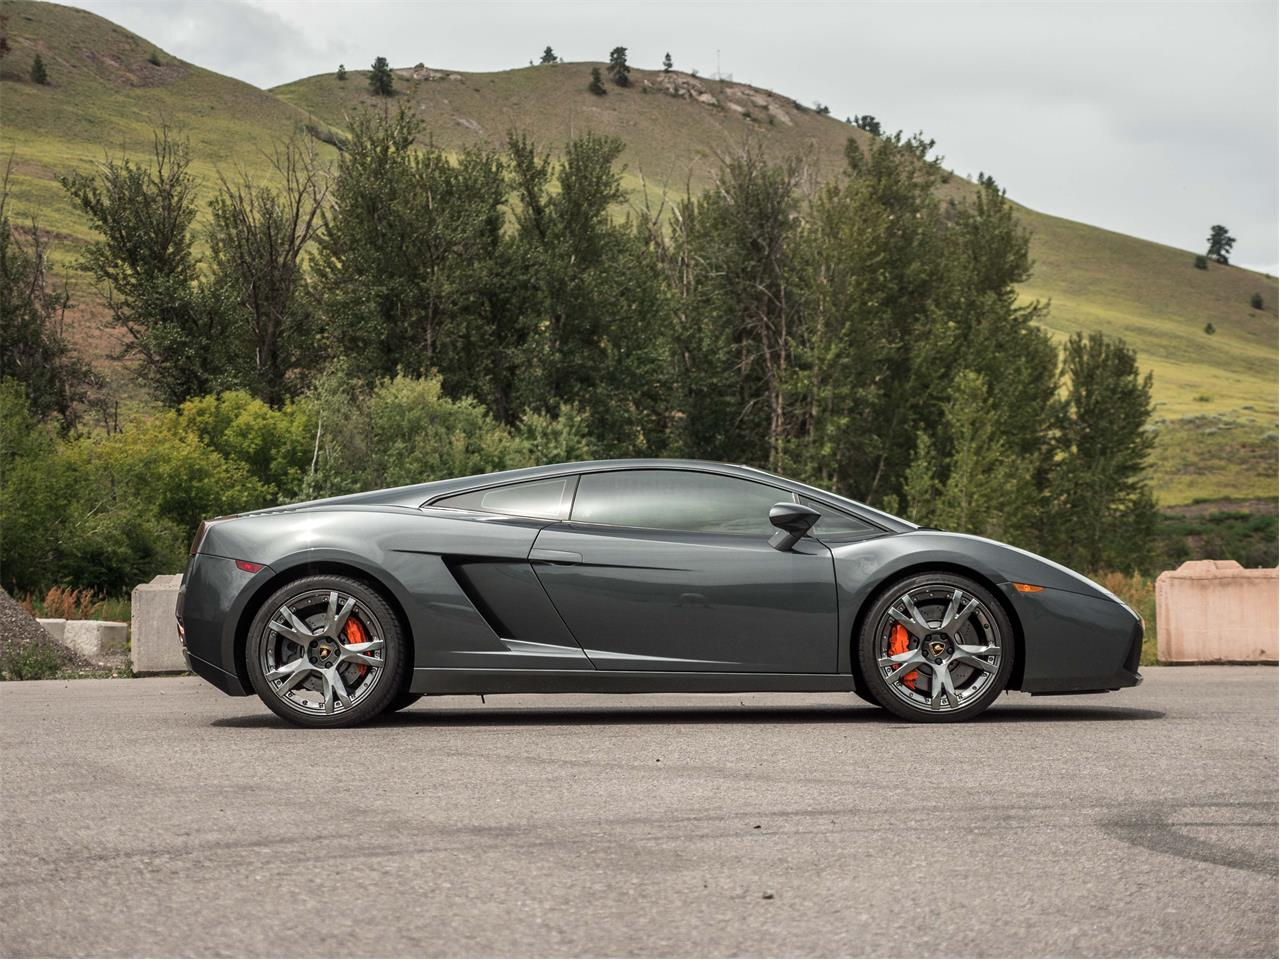 2008 Lamborghini Gallardo (CC-1358282) for sale in Kelowna, British Columbia